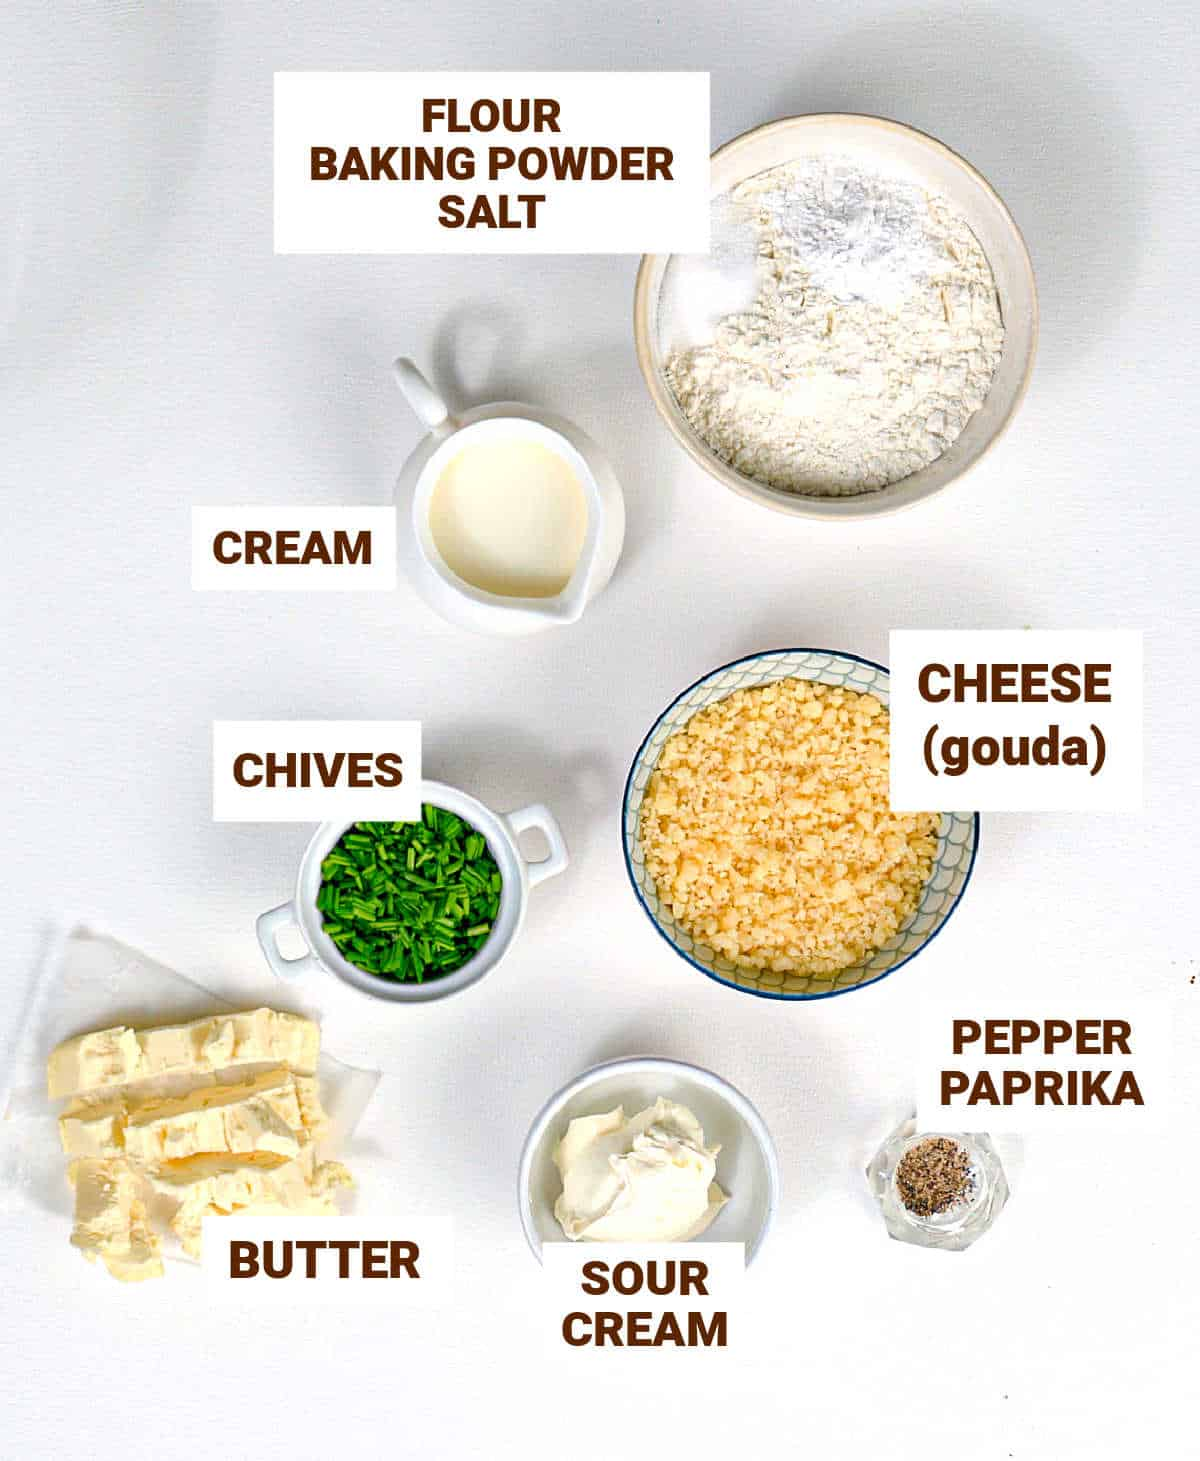 White surface with bowls containing ingredients for cheese scones including chives, butter, sour cream and flour